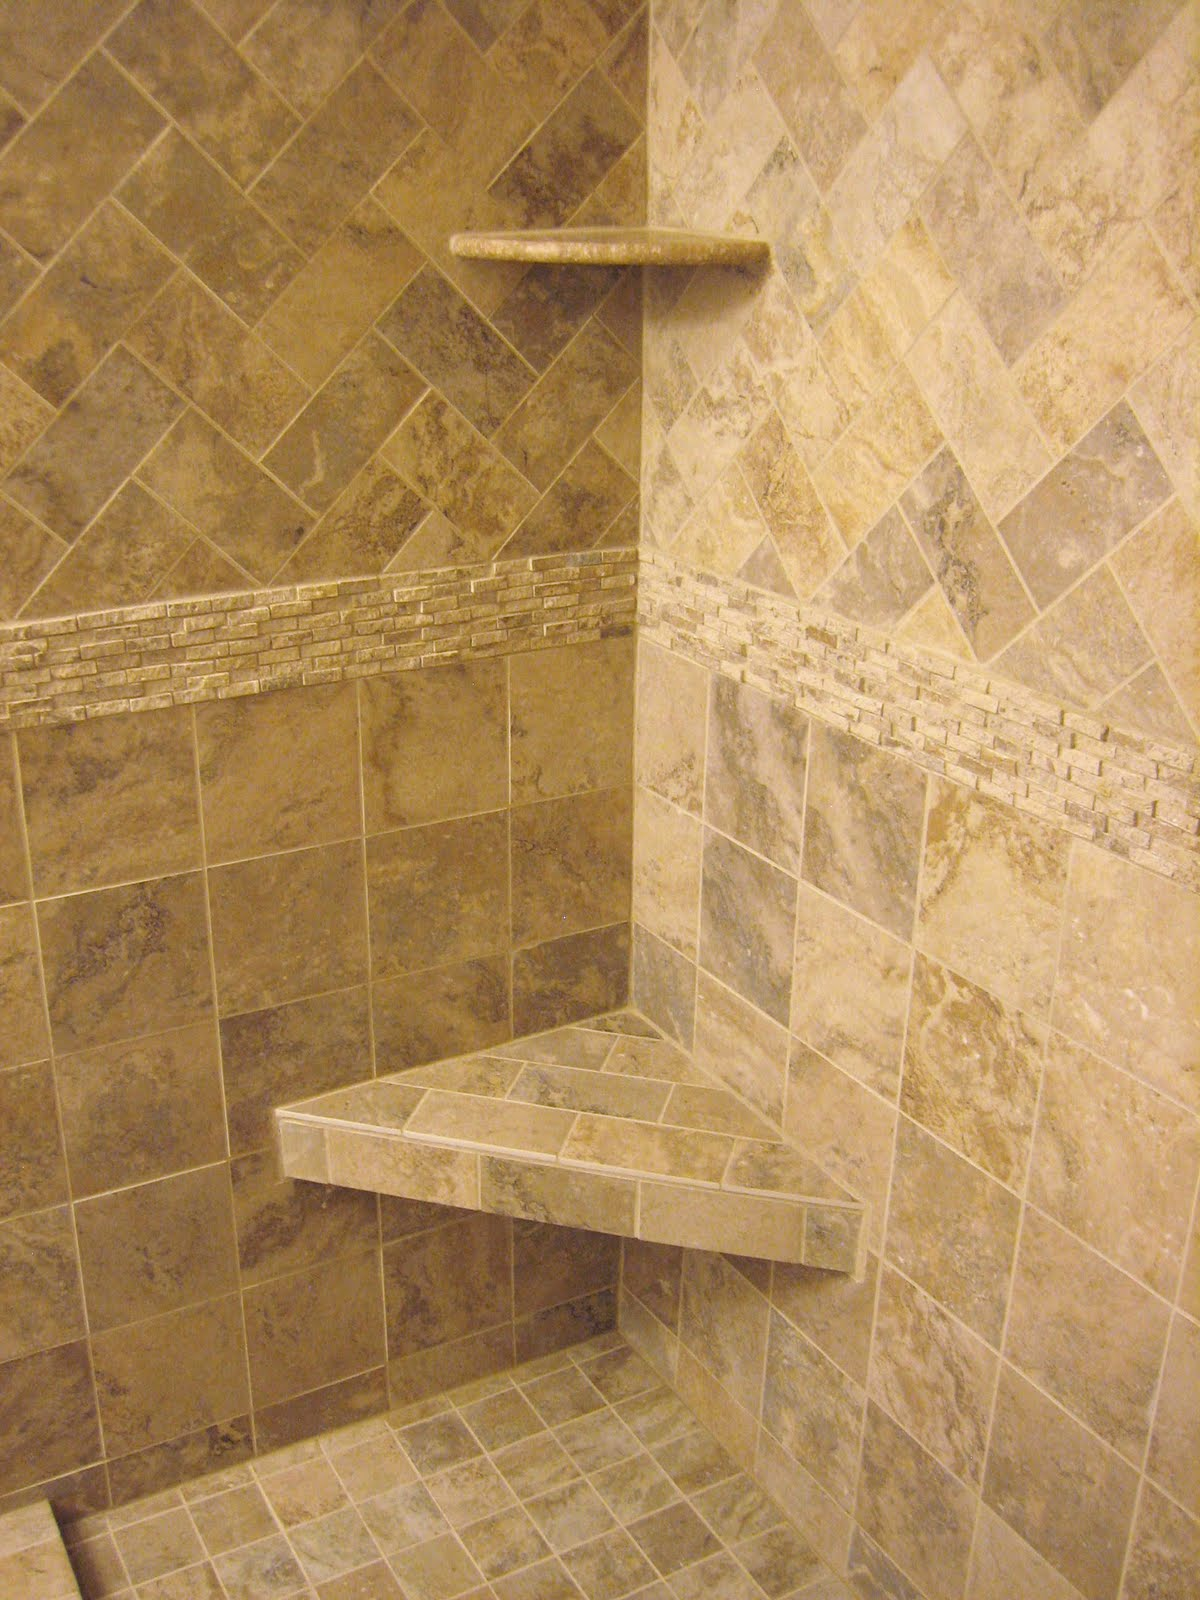 H winter showroom blog june 2010 for Small bathroom tiles design